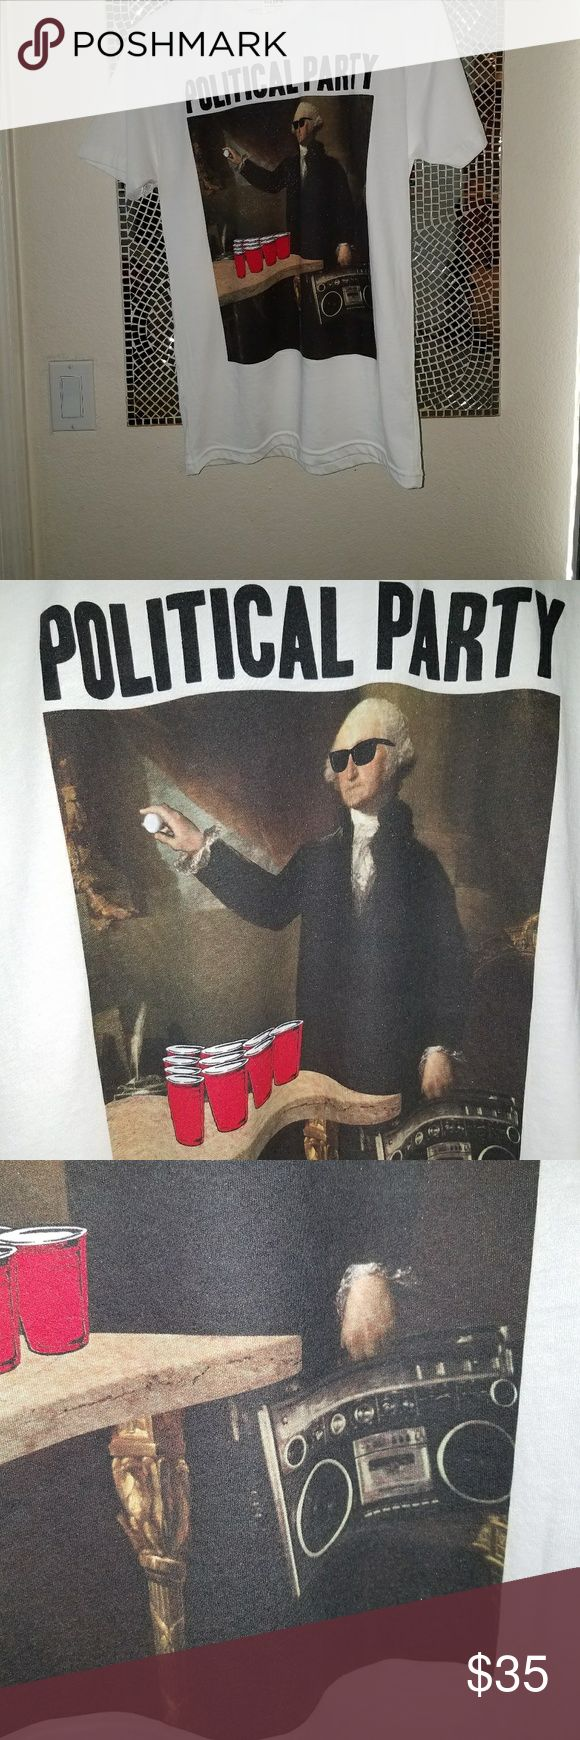 """Political Party shirt Political Party shirt!  Size small mens has grey marker stain on inside shirt. Sold out everywhere else. Riot Society Political Party tee. Graphic of George Washington playing beer pong with """"Political Party"""" screened on front. Short sleeve. Crew neck. 50% cotton/50% polyester. Machine wash. Made in USA. Tilly's Shirts Tees - Short Sleeve"""